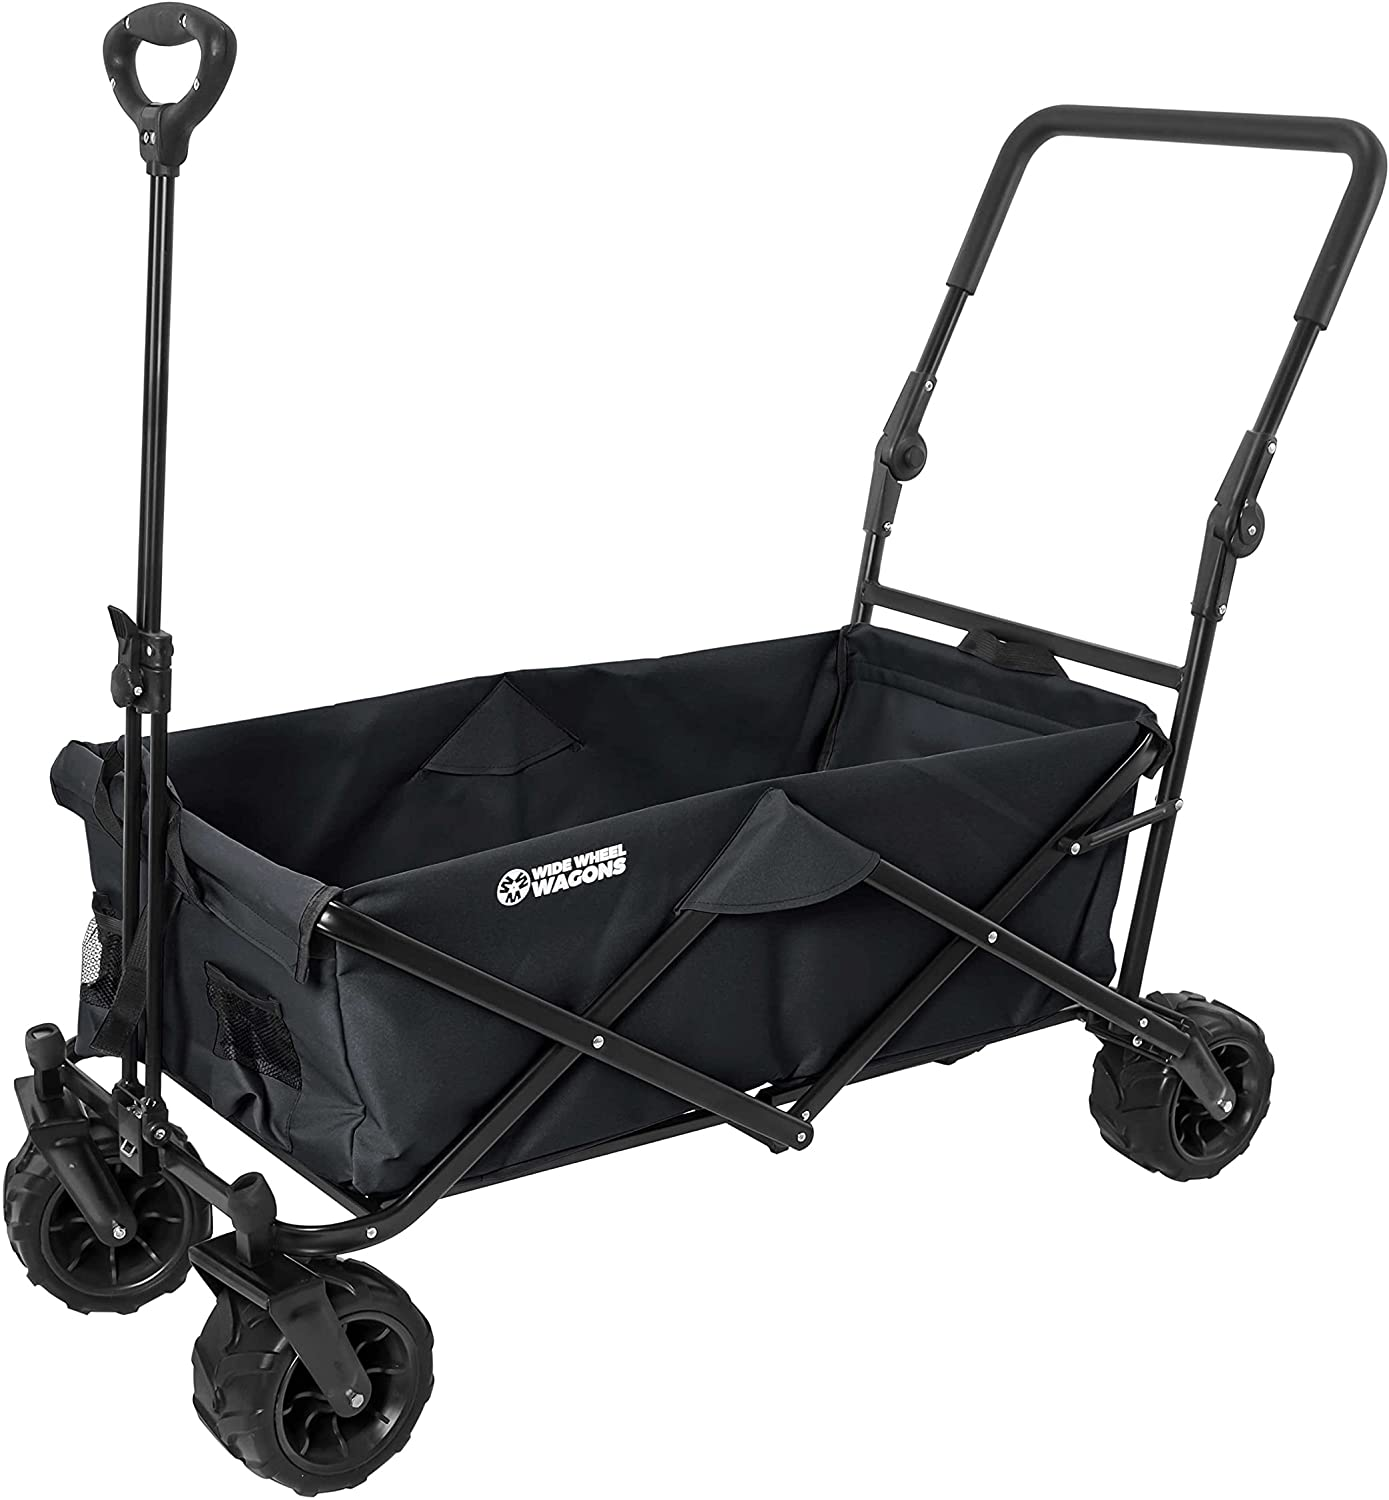 Black Wide Recommended Wheel Wagon All-Terrain Sacramento Mall Utility Folding W Collapsible